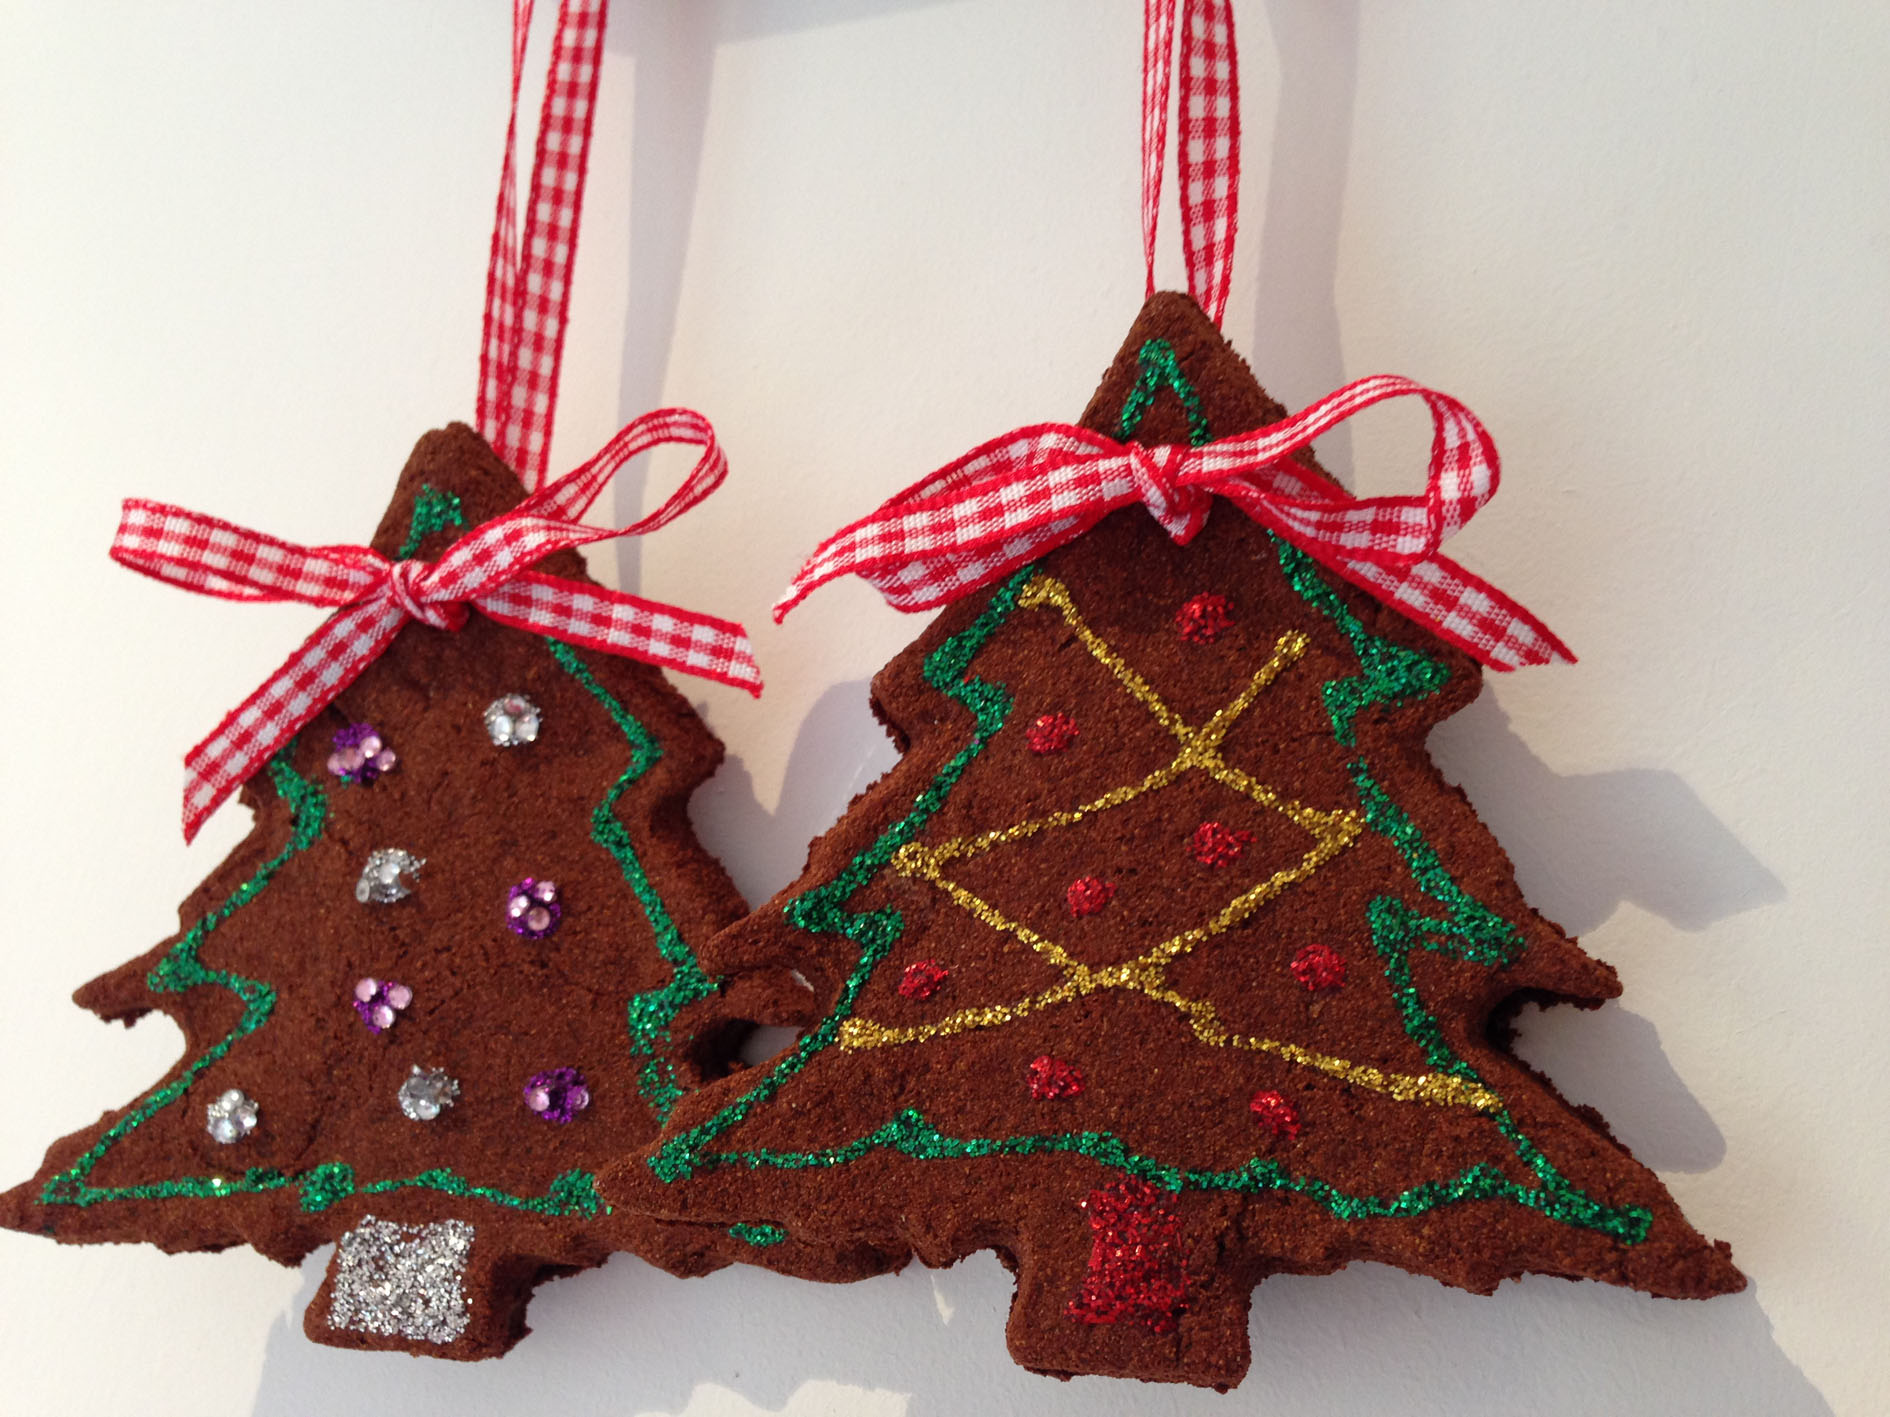 Edible Gingerbread Christmas Tree Decorations : Homemade christmas gingerbread decorations english rose